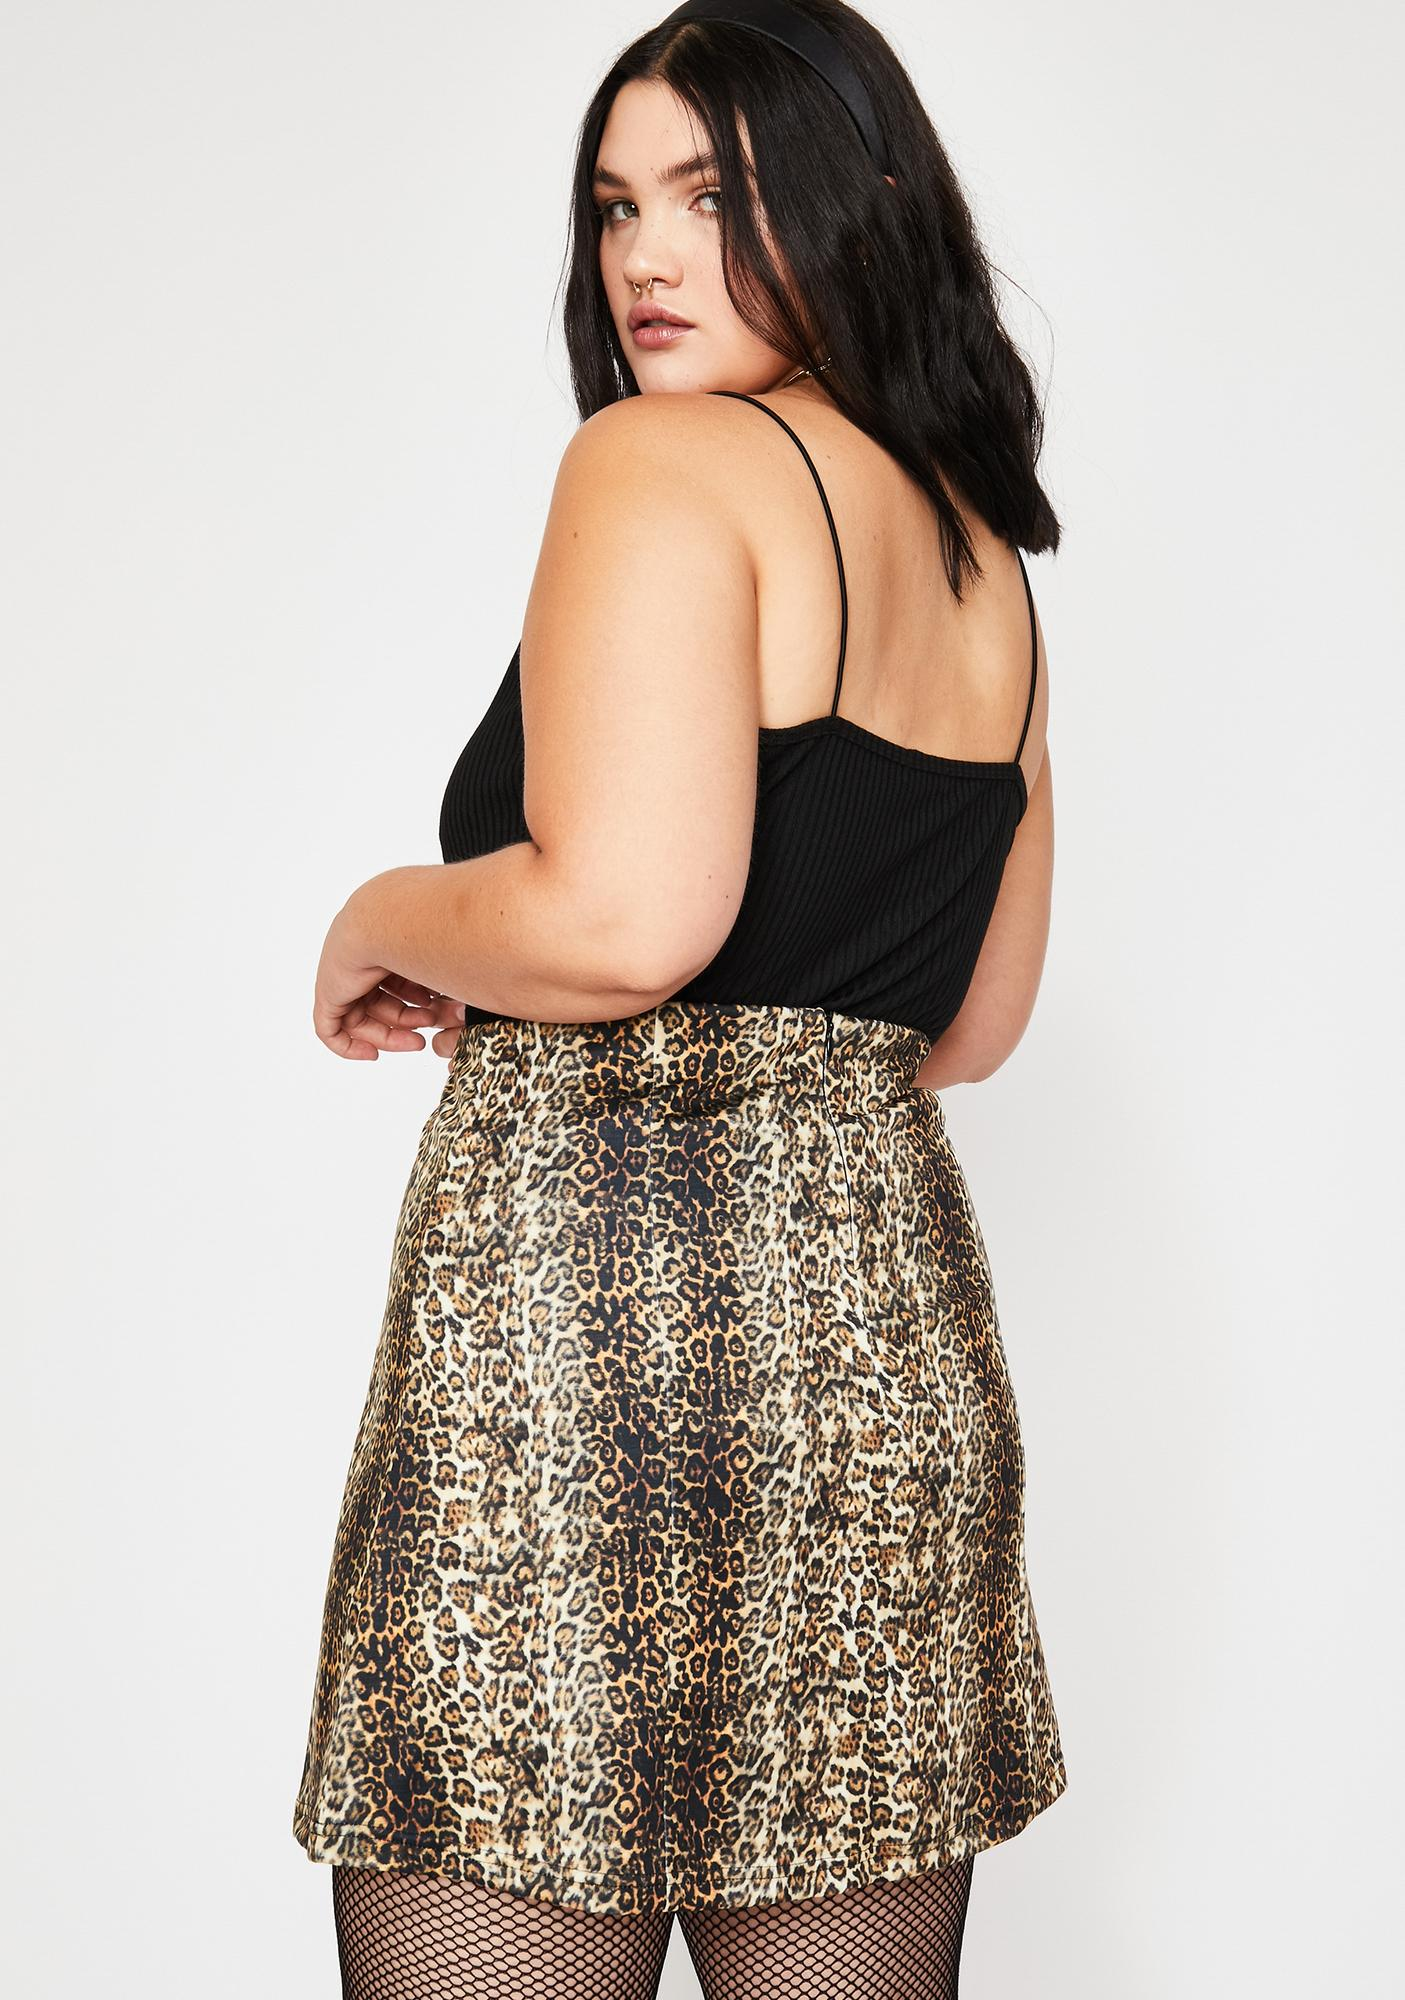 Current Mood Fierce Savannah Sav Leopard Skirt